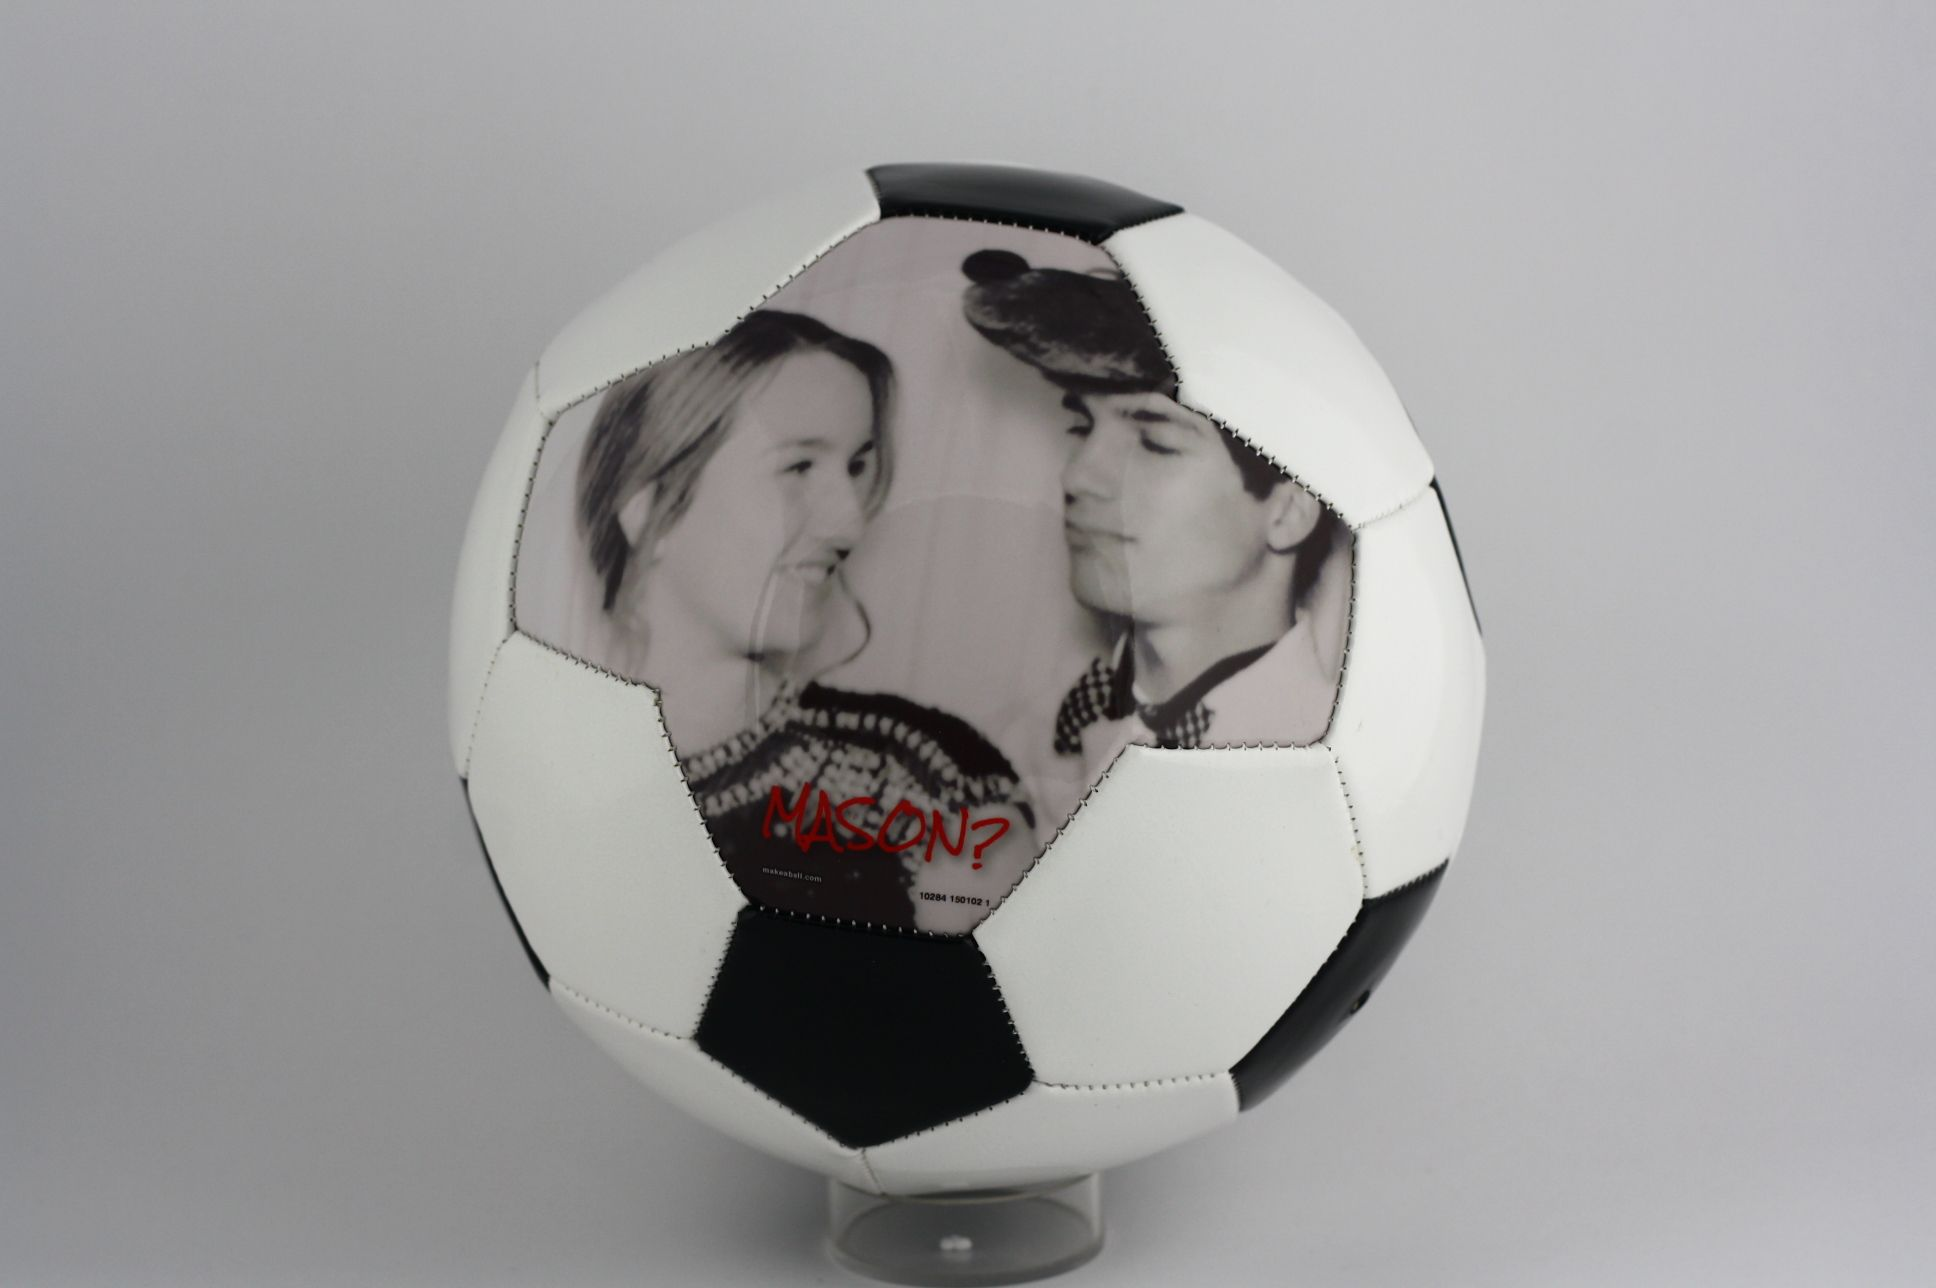 Customized Soccer Ball Perfect For Any Occasions Birthday Anniversar Birthday Gifts For Boyfriend Boyfriend Birthday Valentines Day Gifts For Him Boyfriends